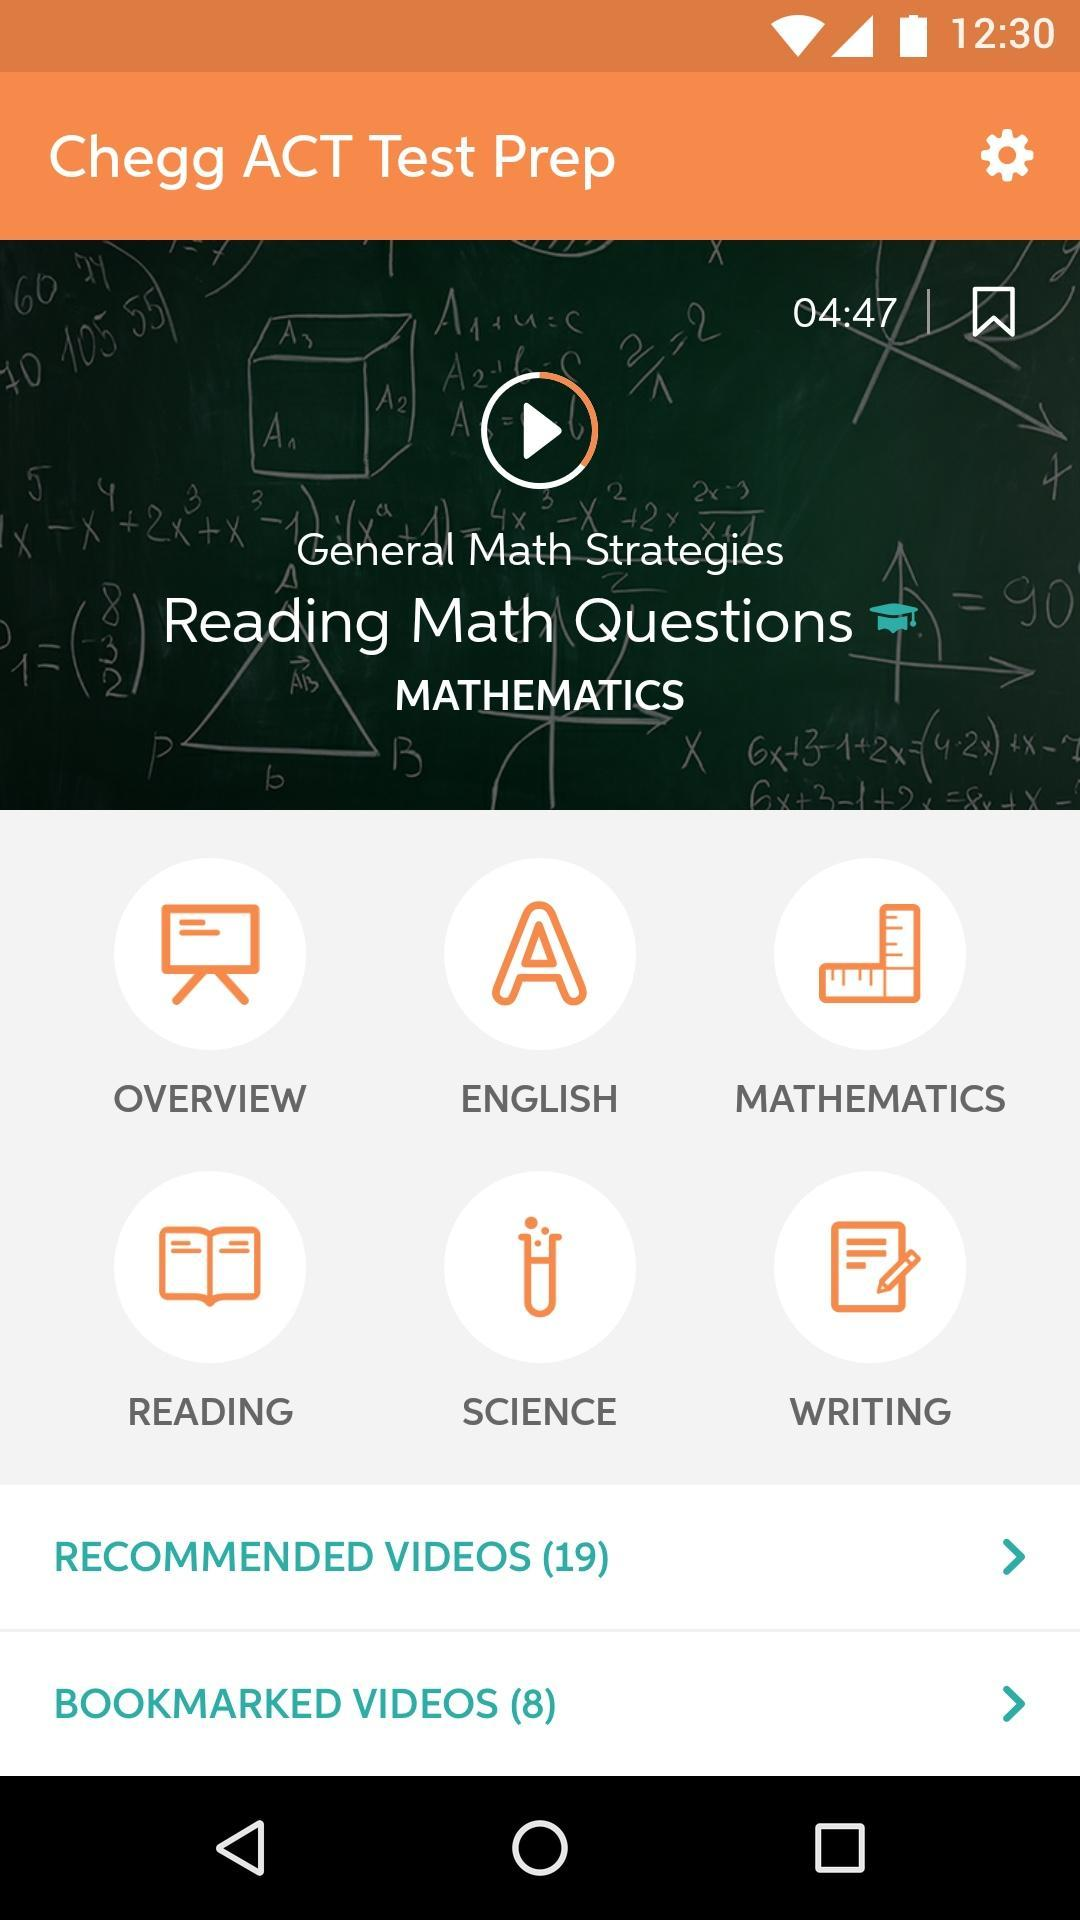 Chegg ACT Test Prep for Android - APK Download